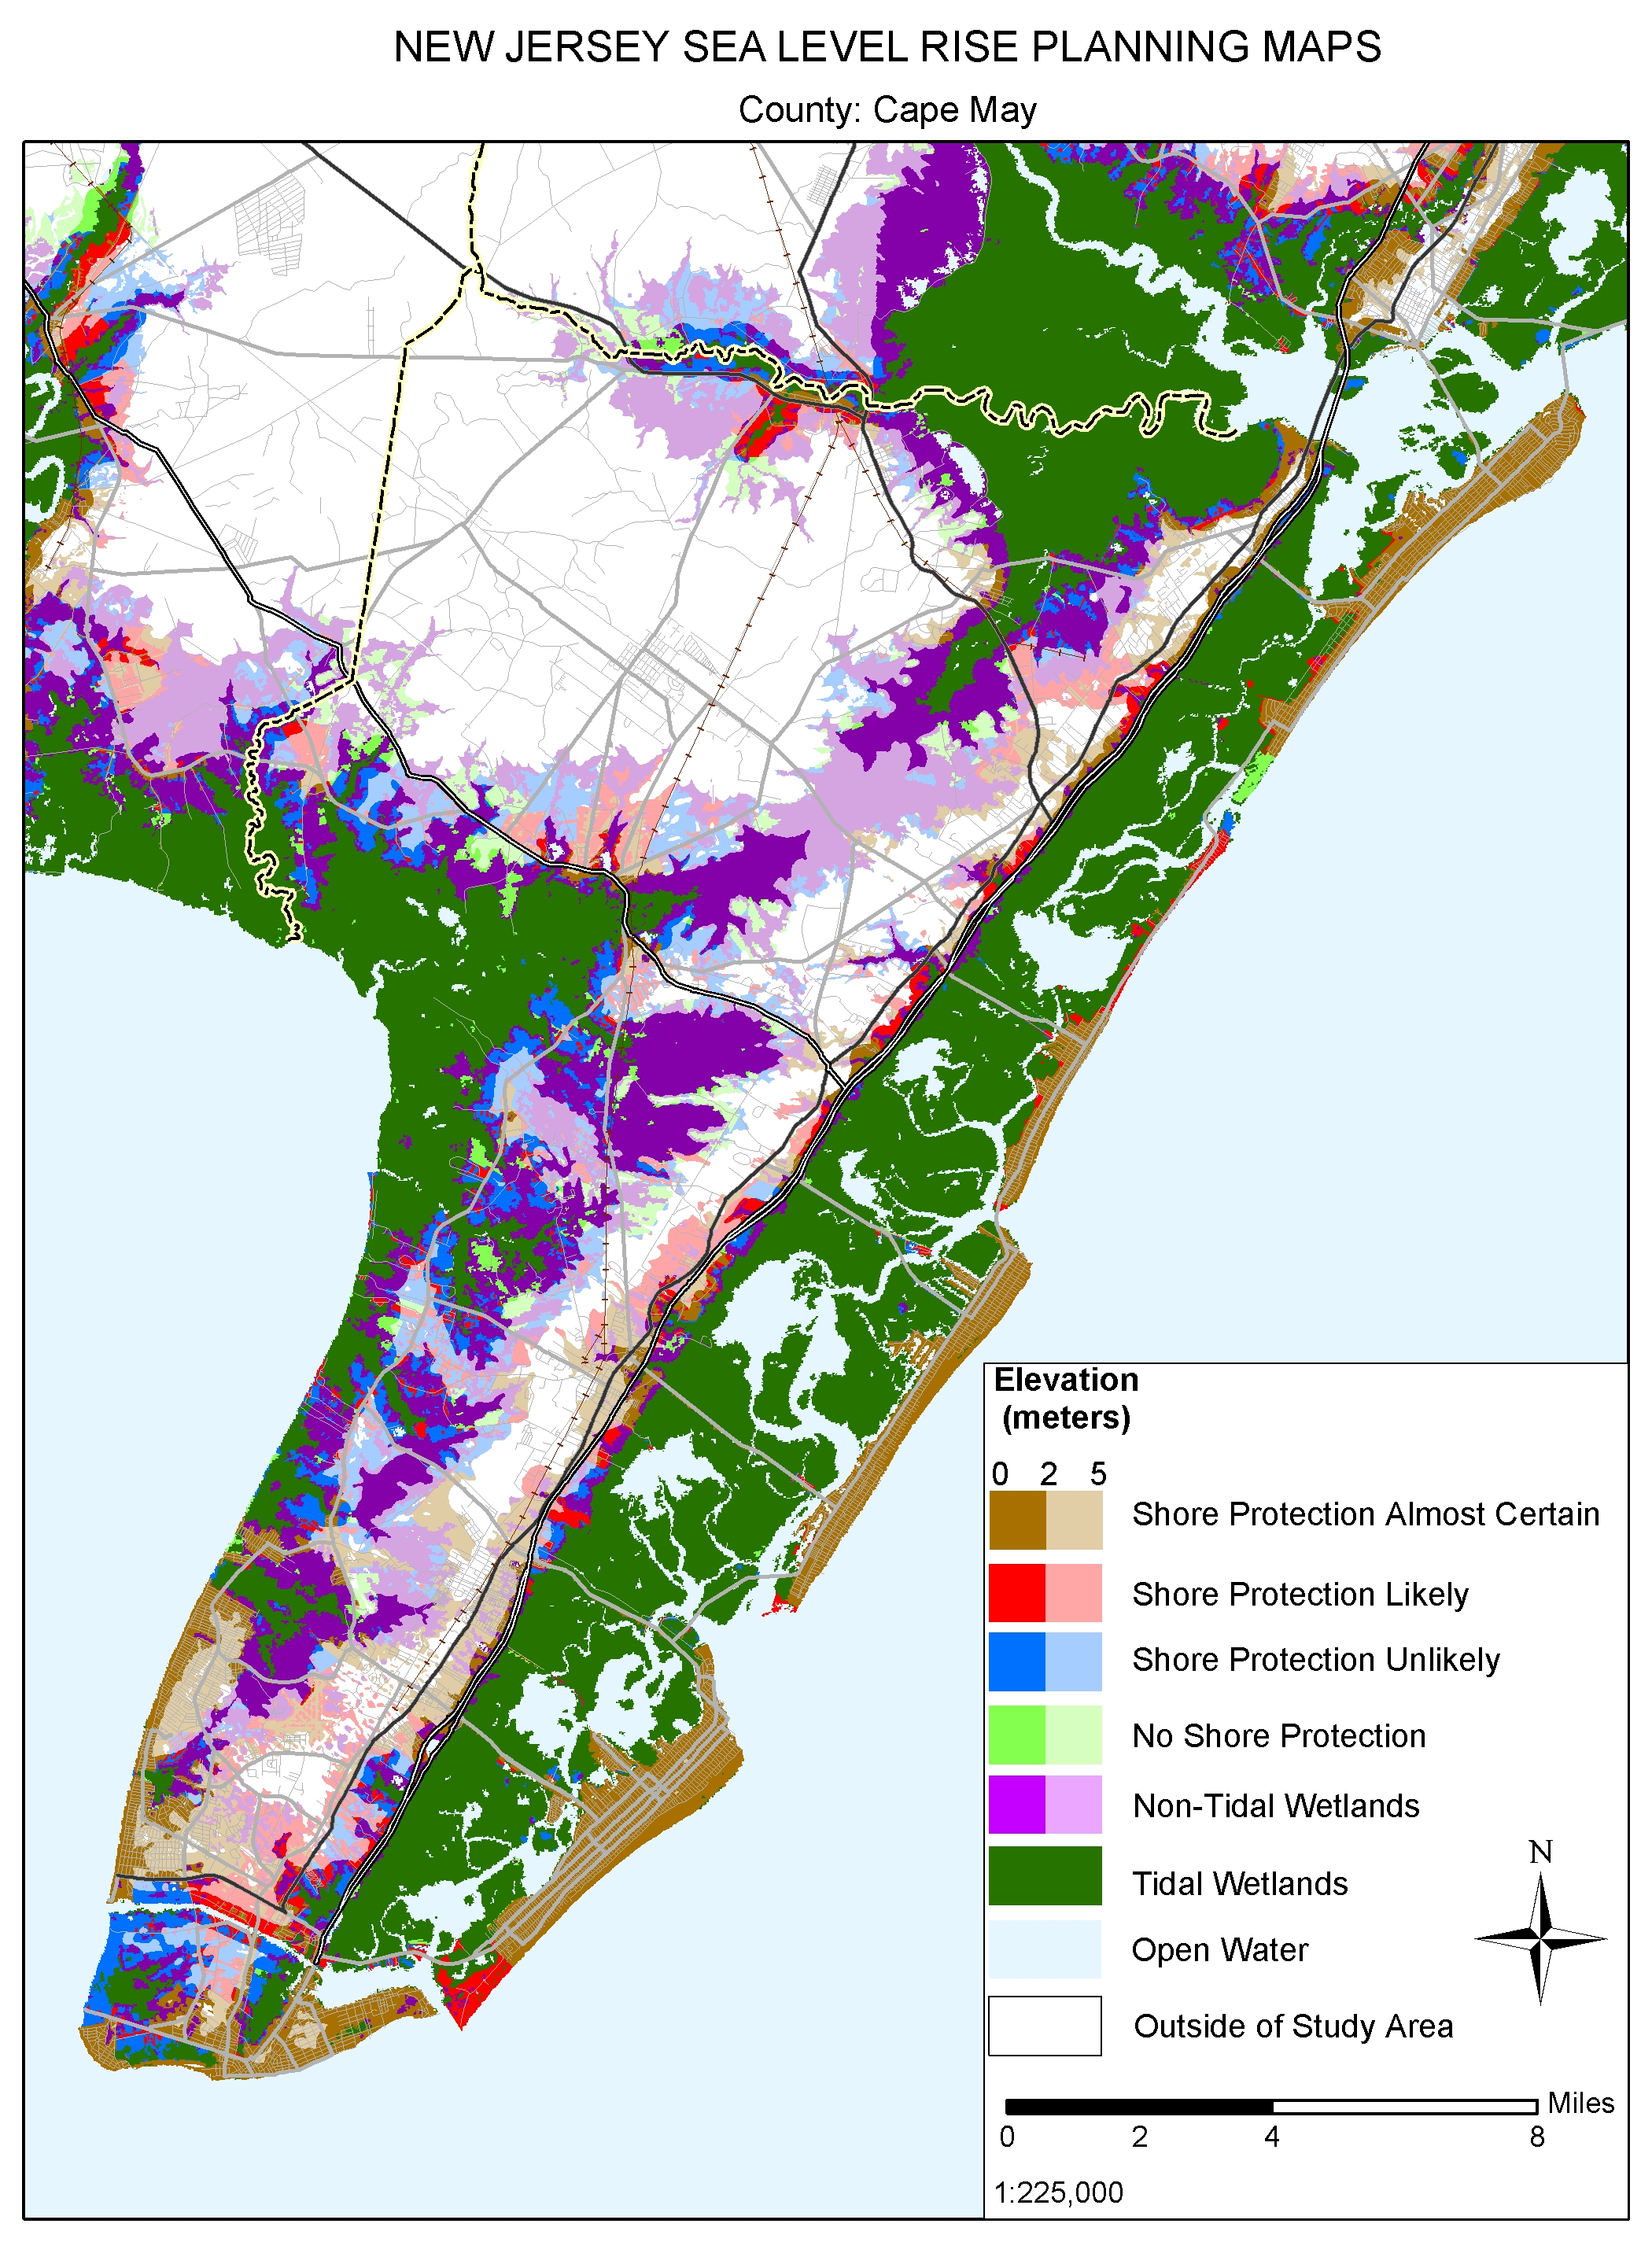 Cape May, New Jersey: sea level rise planning map